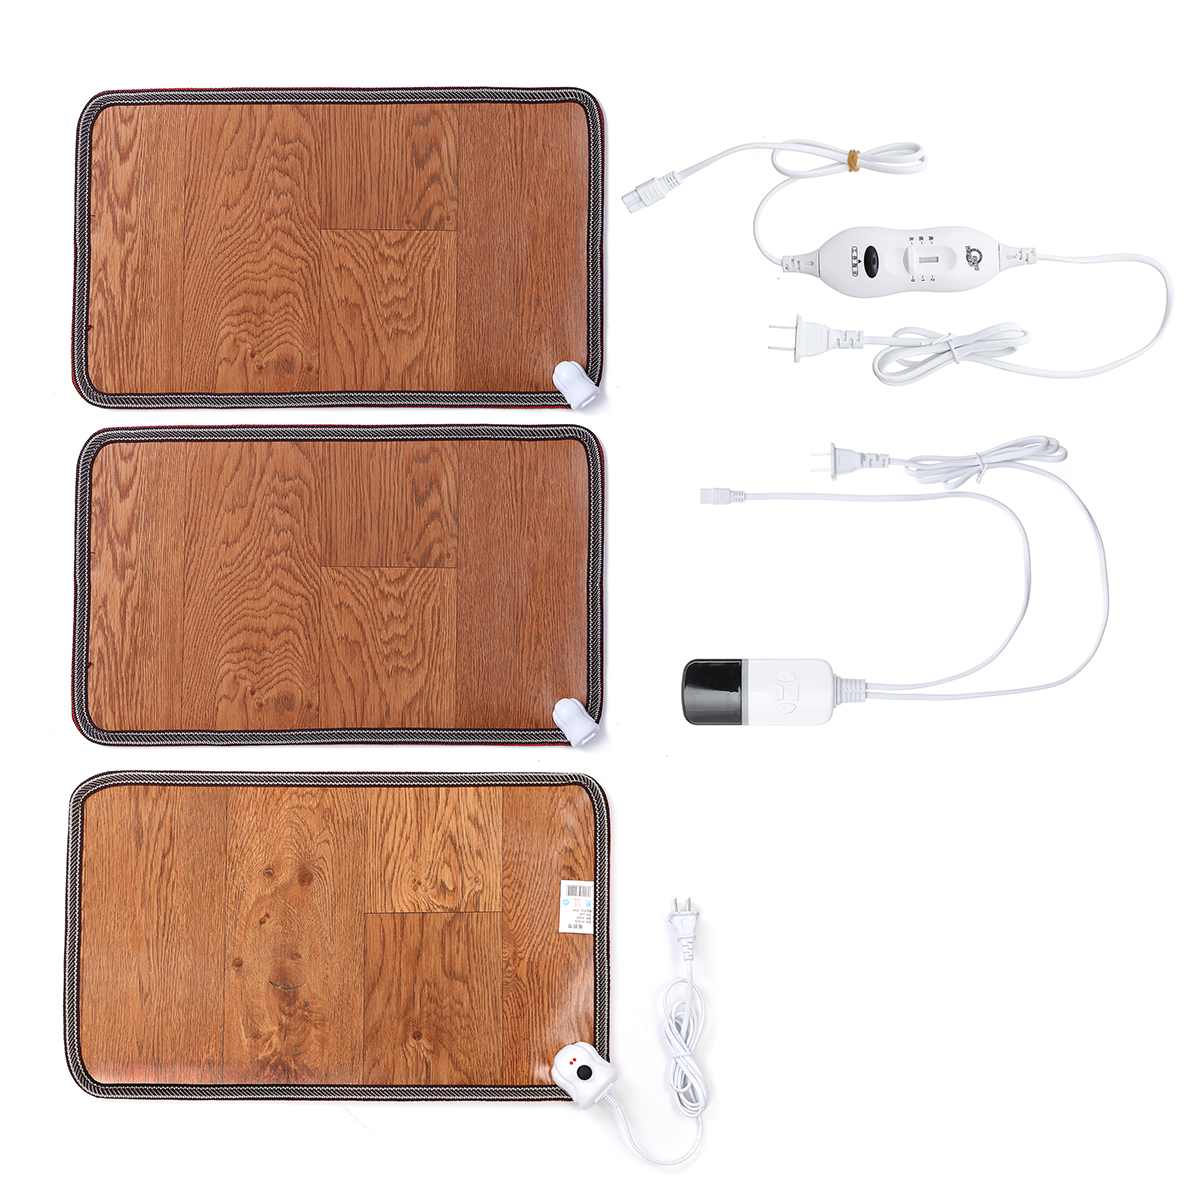 Adjustable Leather Heating Foot Mat Warmer Electric Heating Pads Feet Leg Warmer Carpet Thermostat Warming Tools Home Office